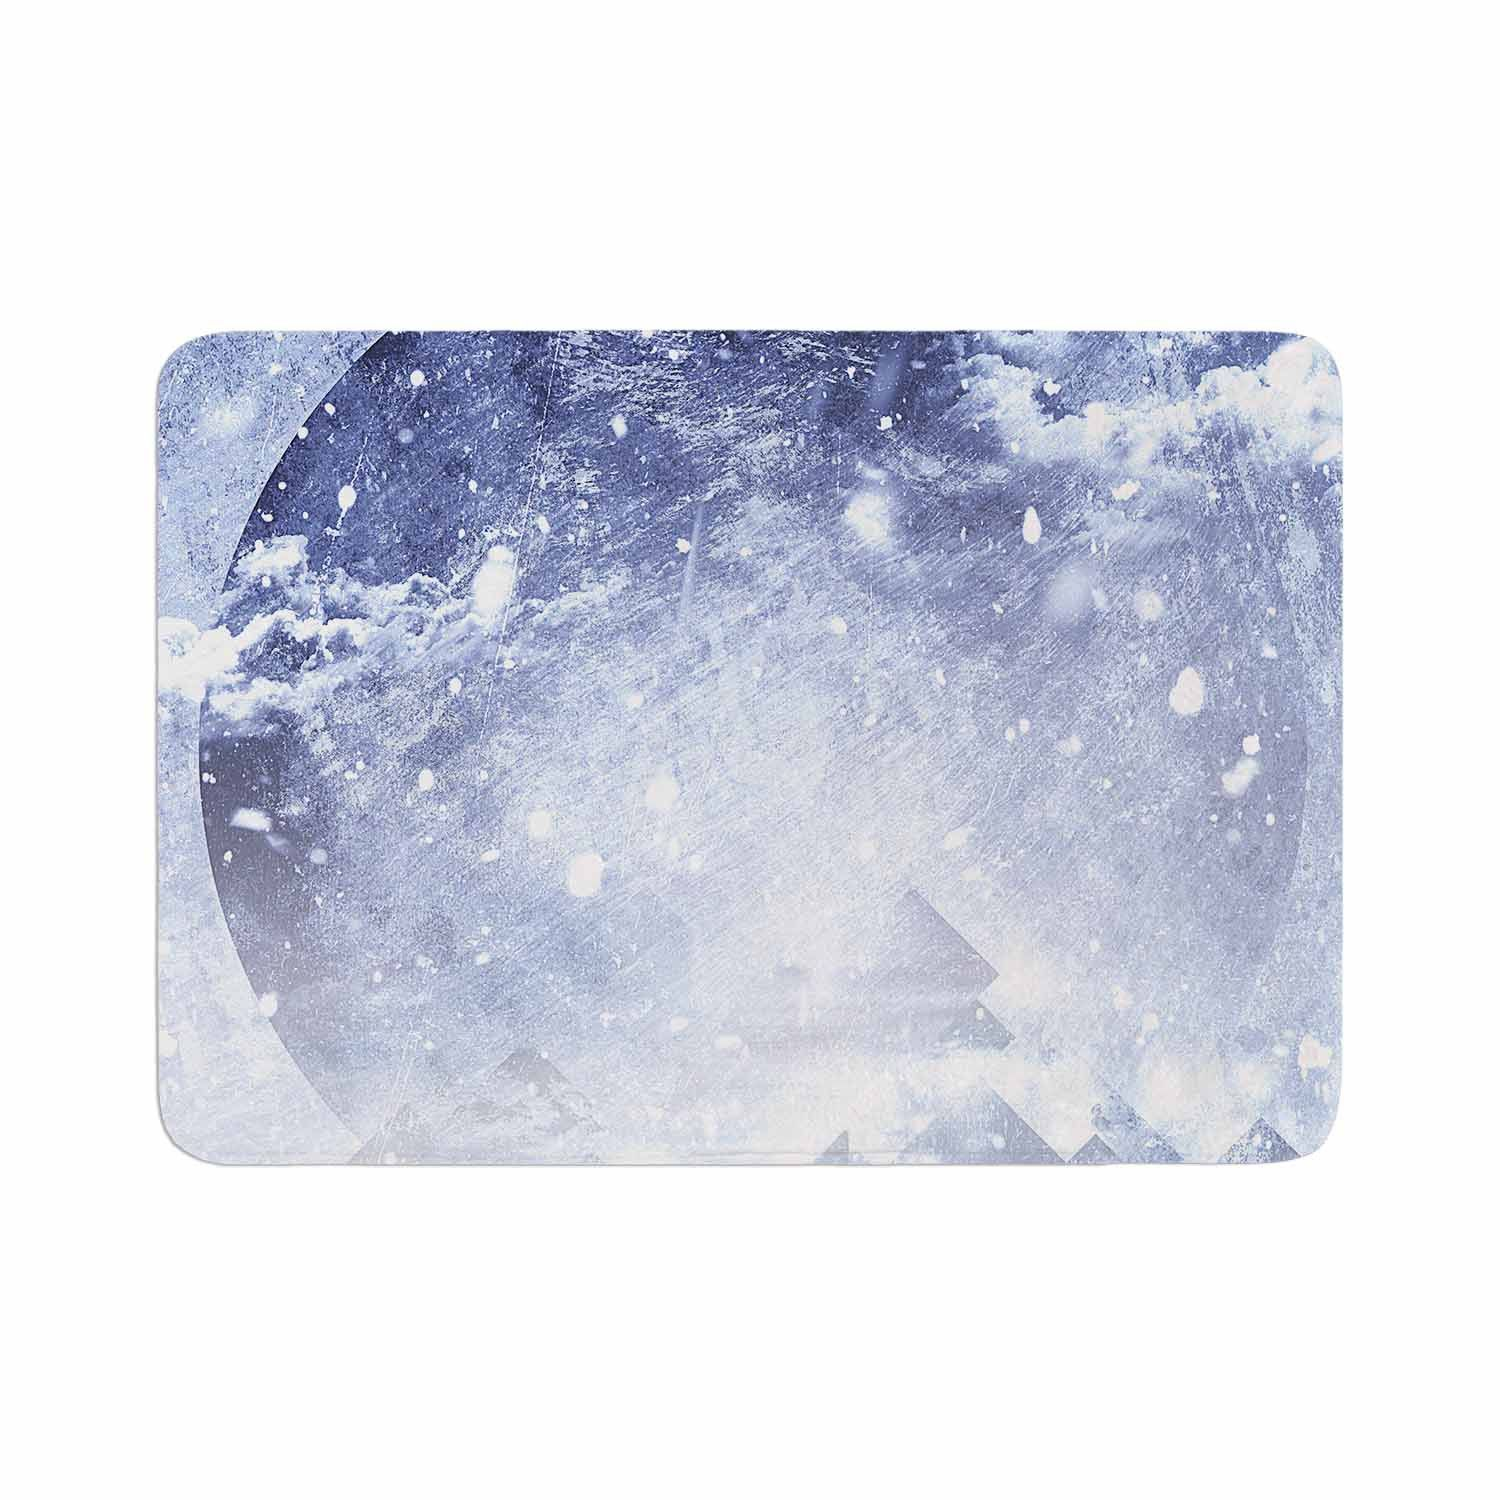 "Ulf Harstedt ""Even Mountains Get Cold"" Blue White Memory Foam Bath Mat"